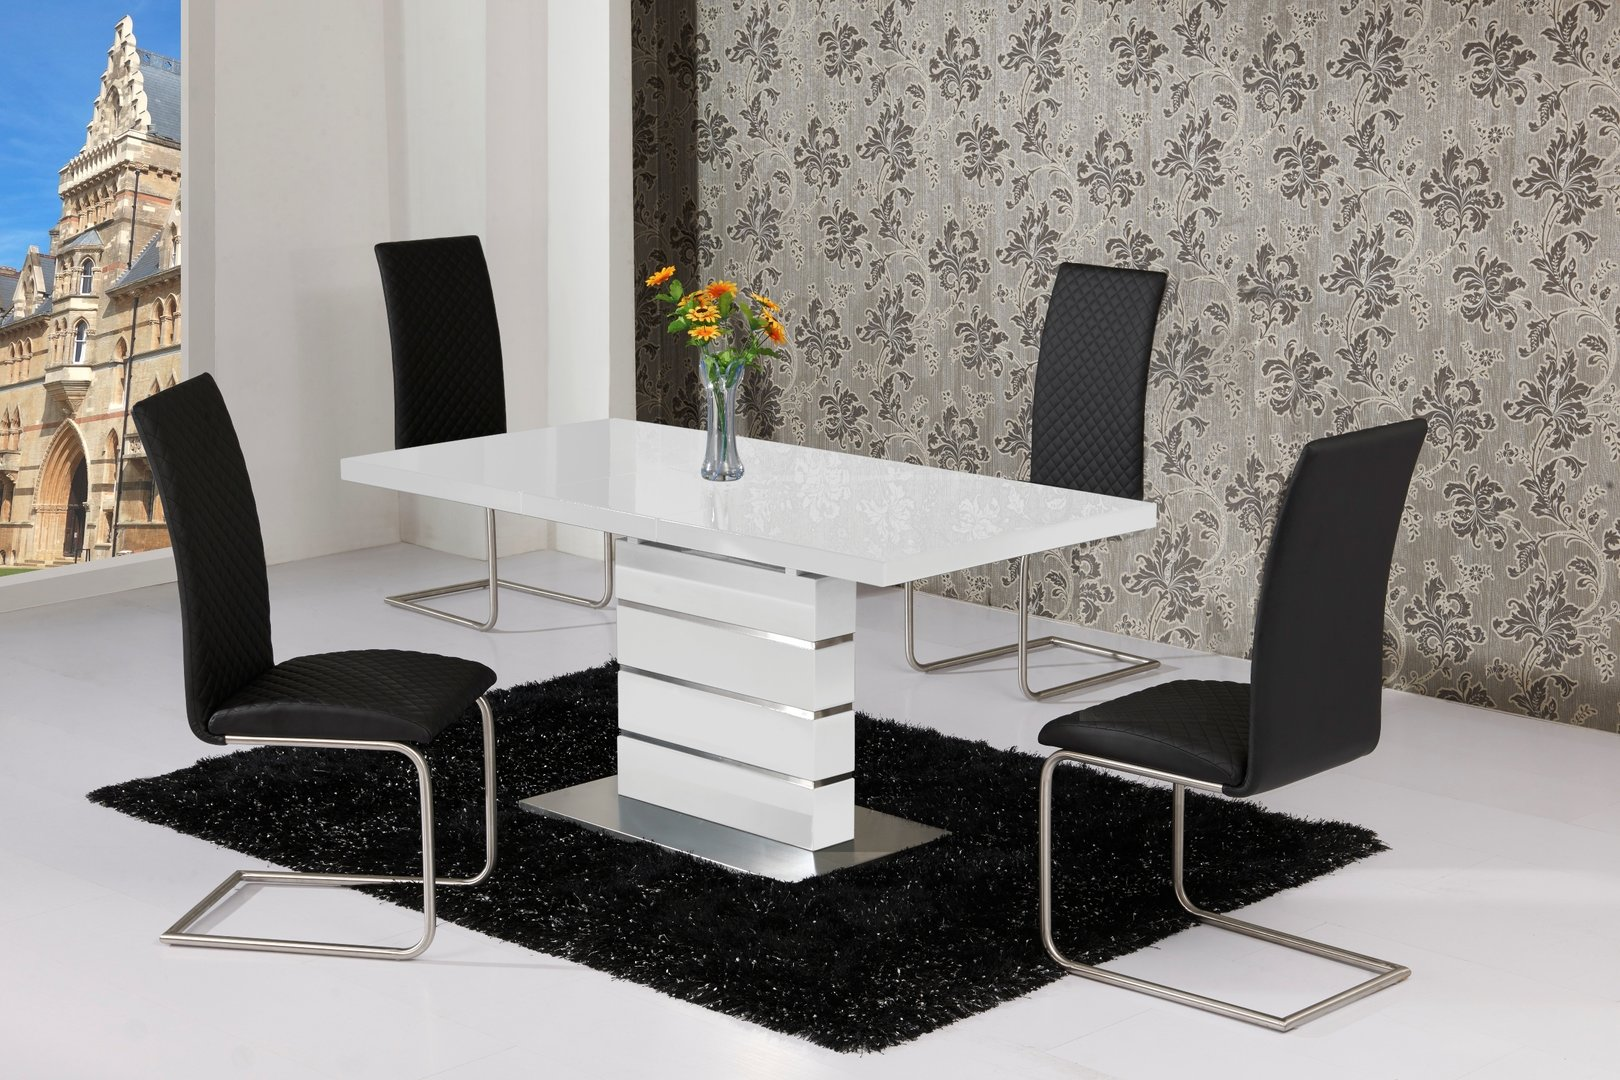 Extending White High Gloss Dining Table And 4 Black Chairs